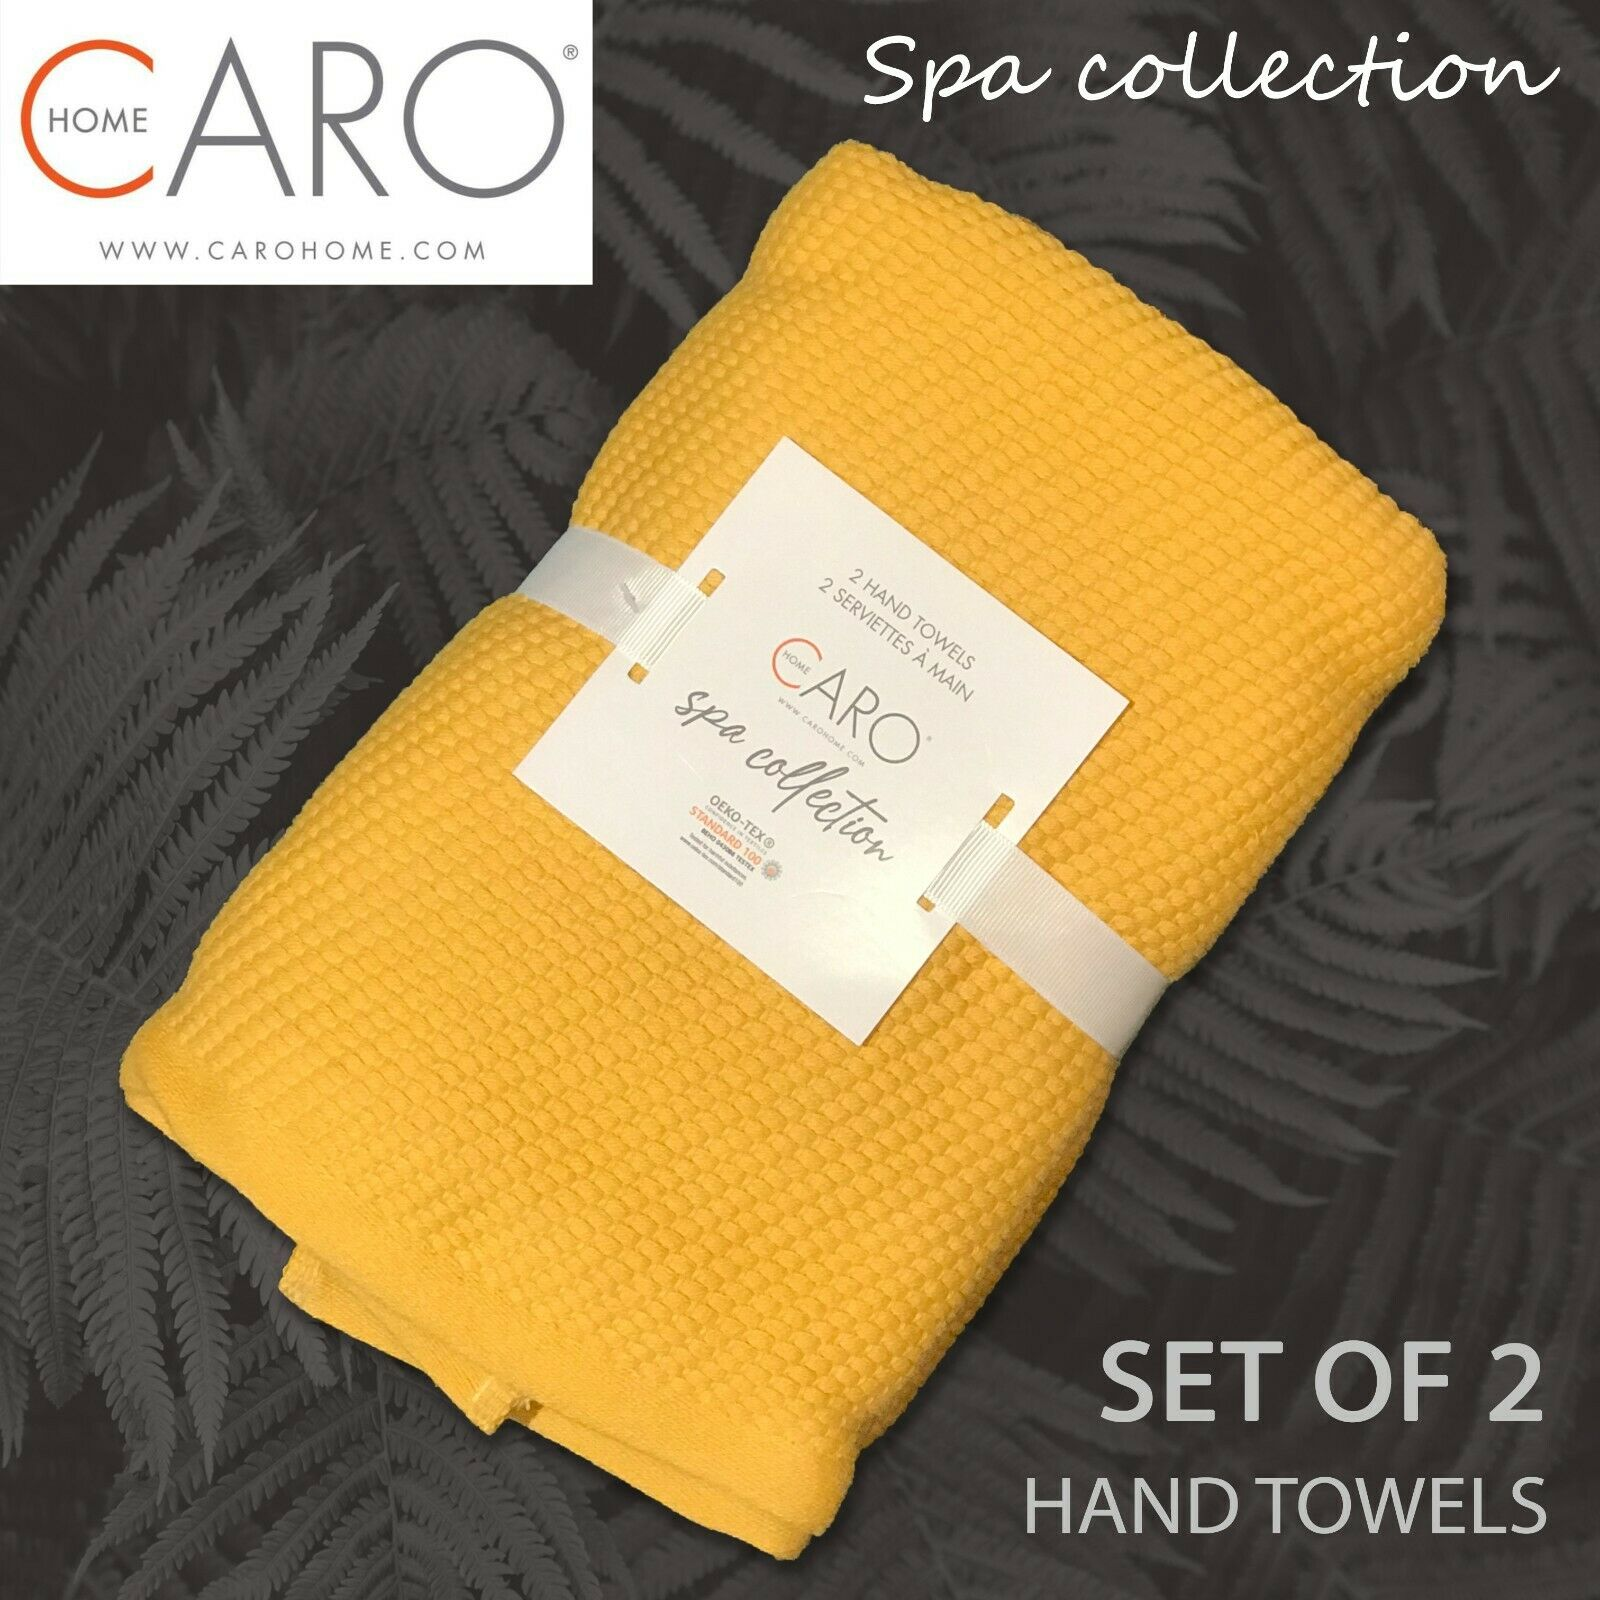 2-PK New CARO HOME Spa Collection Hand Towels Soft Absorbent